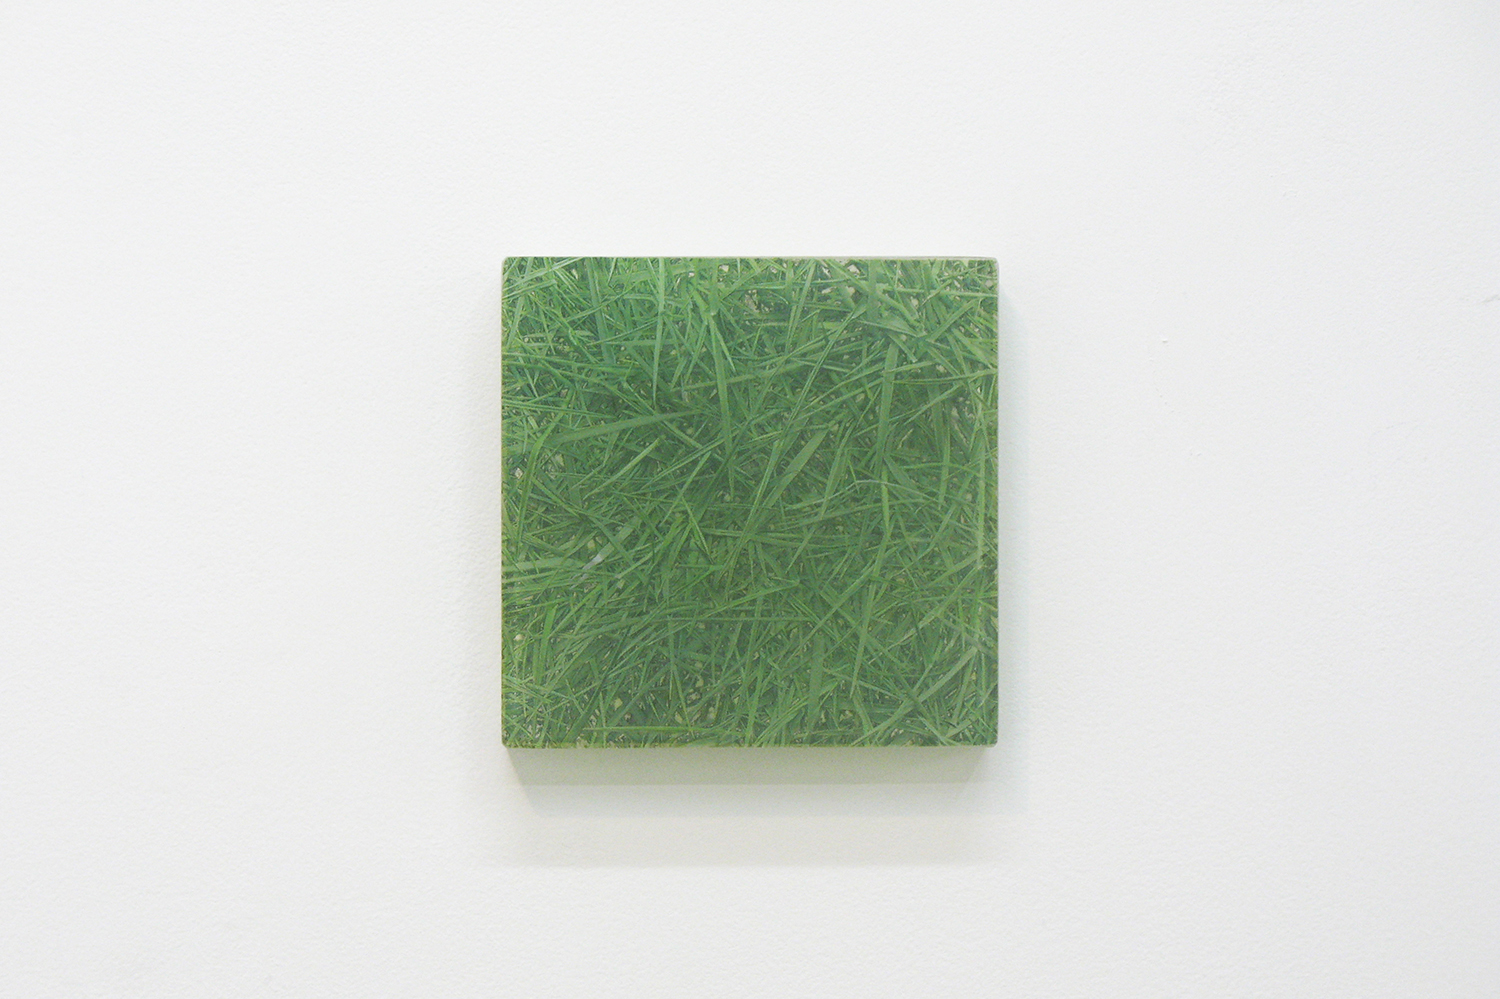 Photo painting [叢 grass 06-31.5],  oil on polyester resin panel and mixed media, 14 × 14 cm, 2006